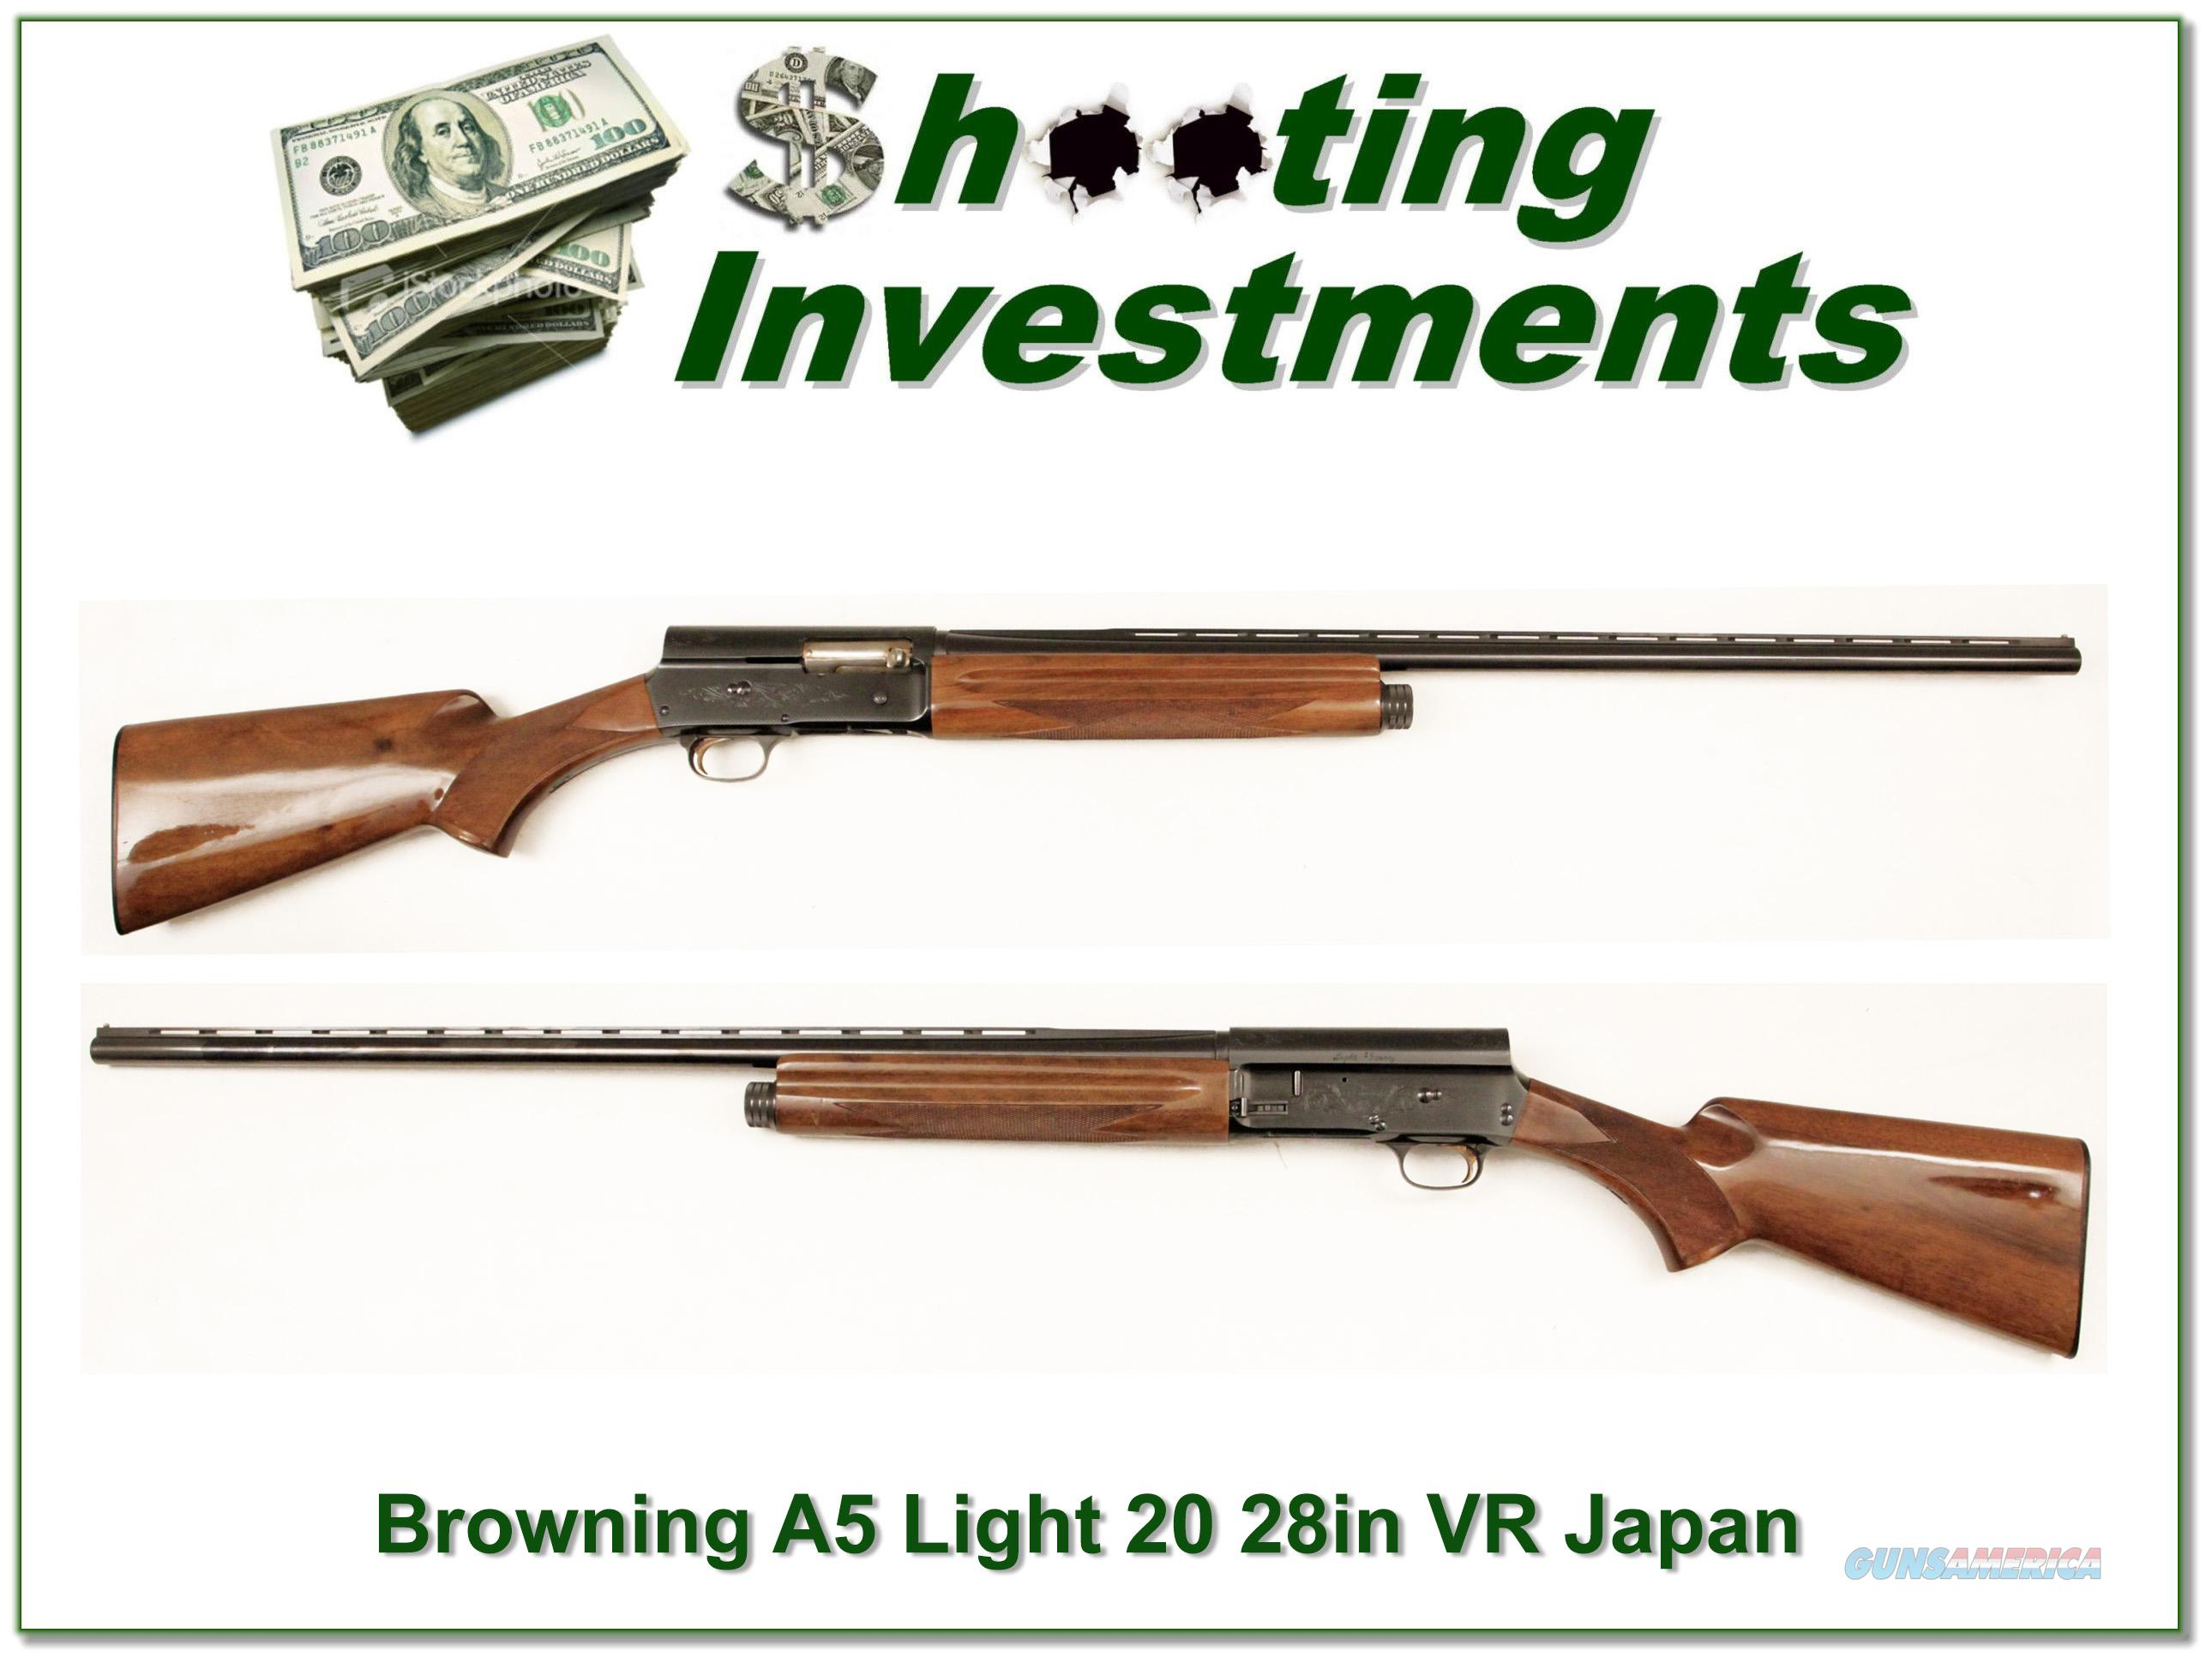 Browning A5 Light 20 28in VR Modified  Guns > Shotguns > Browning Shotguns > Autoloaders > Hunting